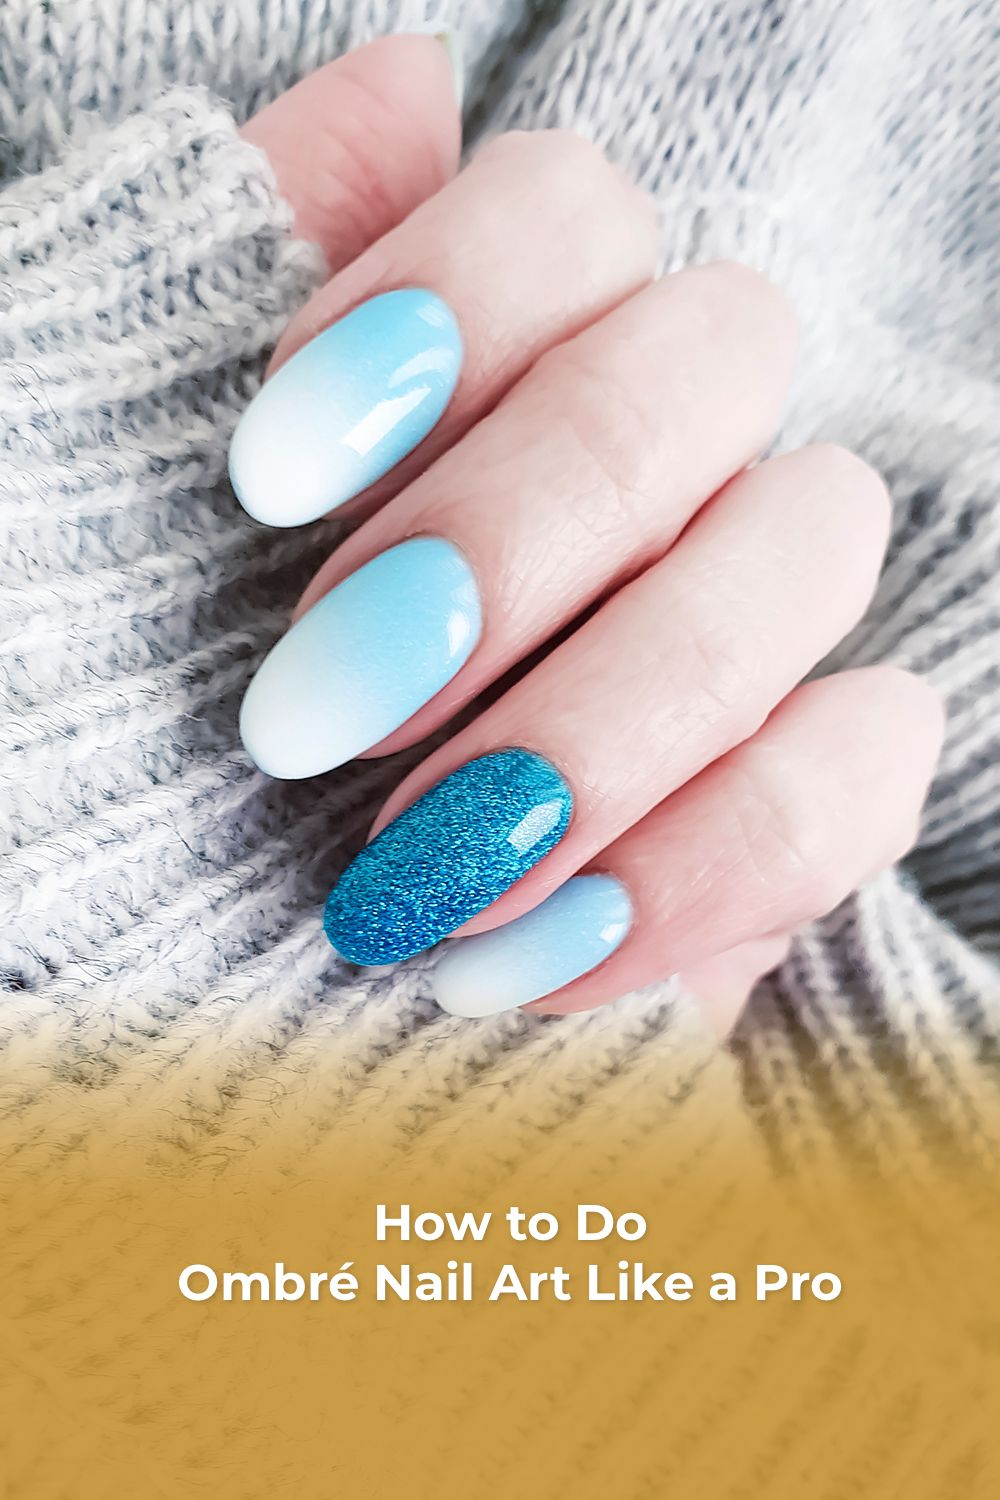 Can You Do Nails Without A License : nails, without, license, Ombré, Professional, Manicurist, Ombre,, Techniques,, Simple, Nails